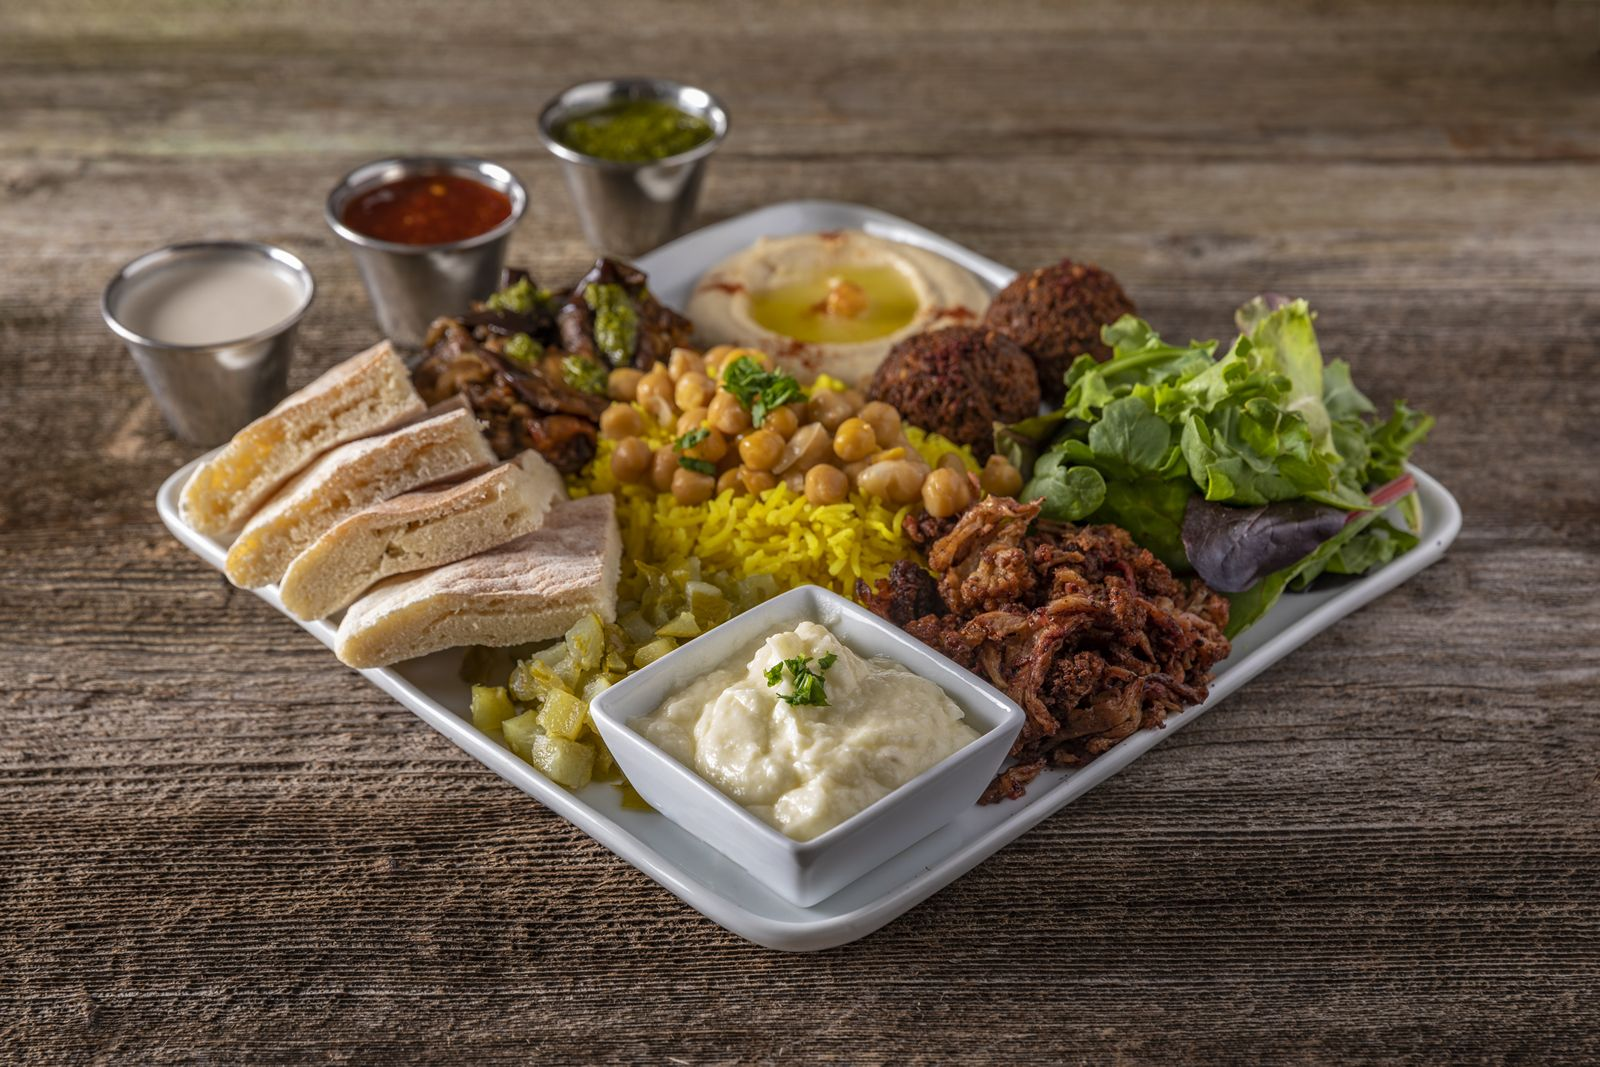 SAJJ Mediterranean has launched three new, pre-designed SAJJ Plates at all locations across California.